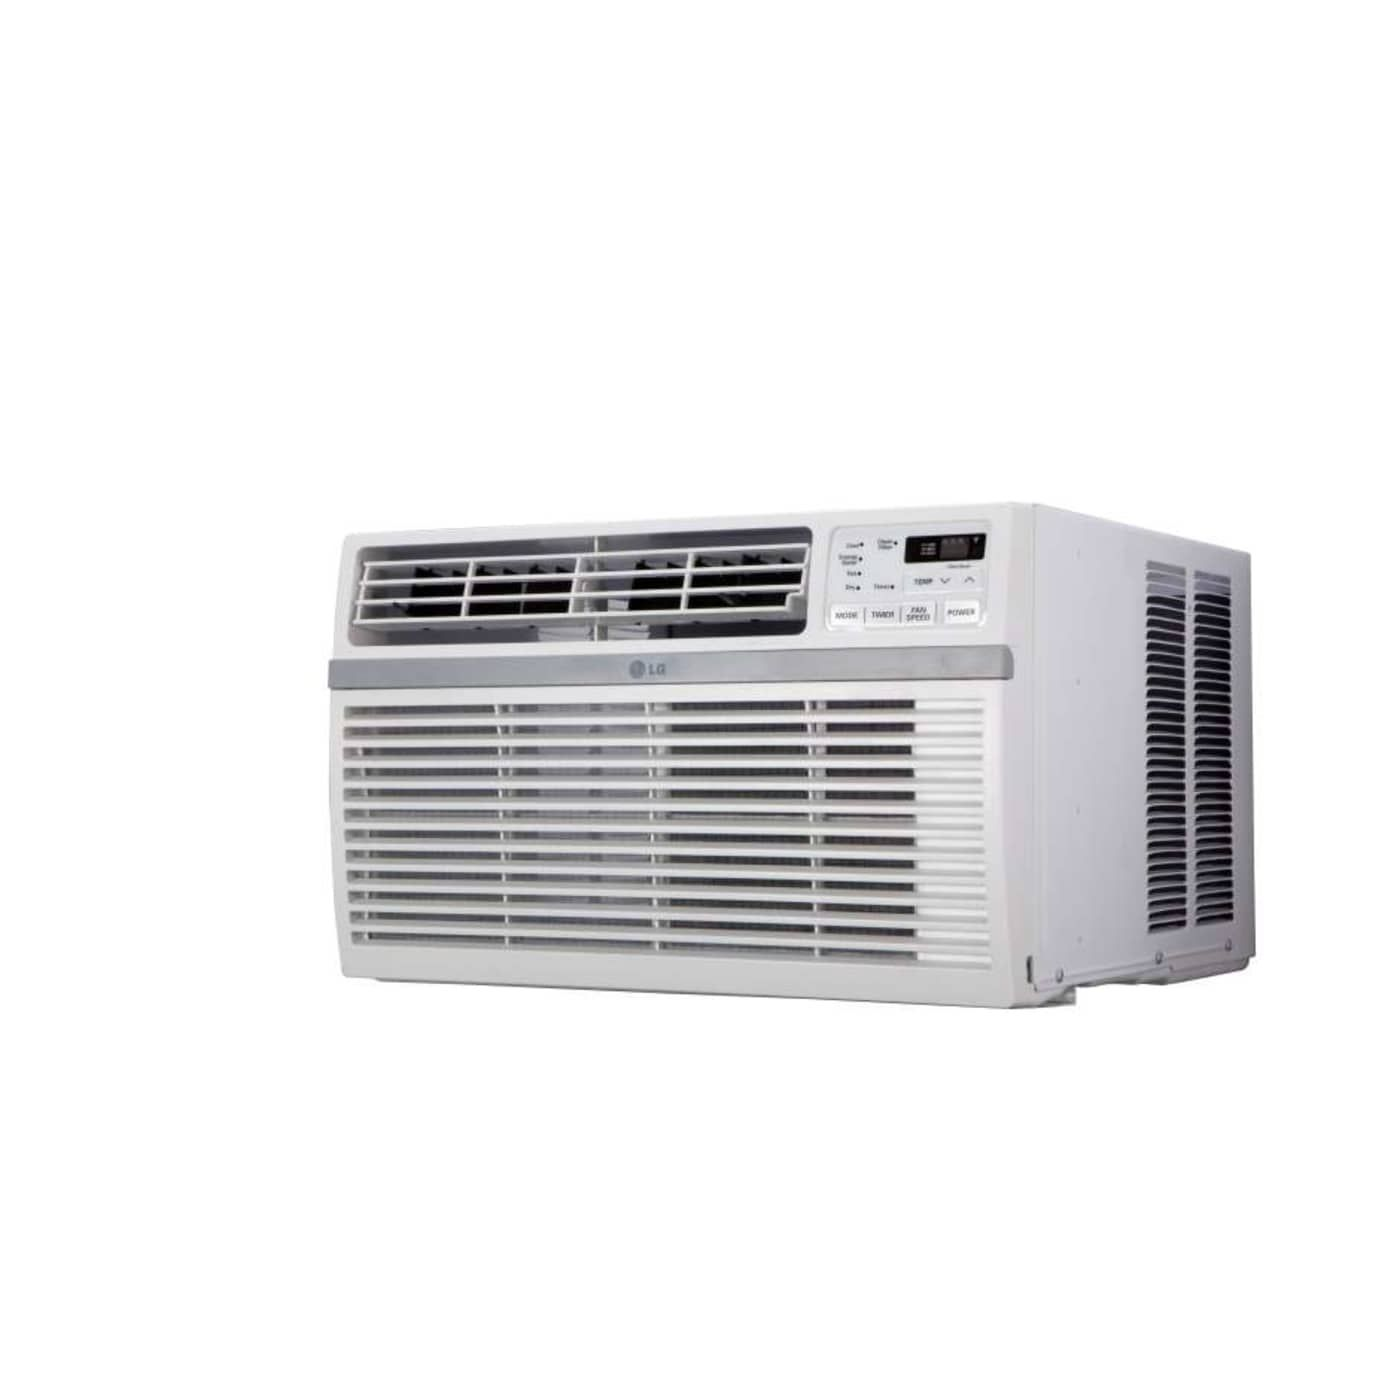 What Is A Mini Split Or Ductless Air Conditioner Wall Mounted Air Conditioner Air Conditioner Repair Ductless Air Conditioner